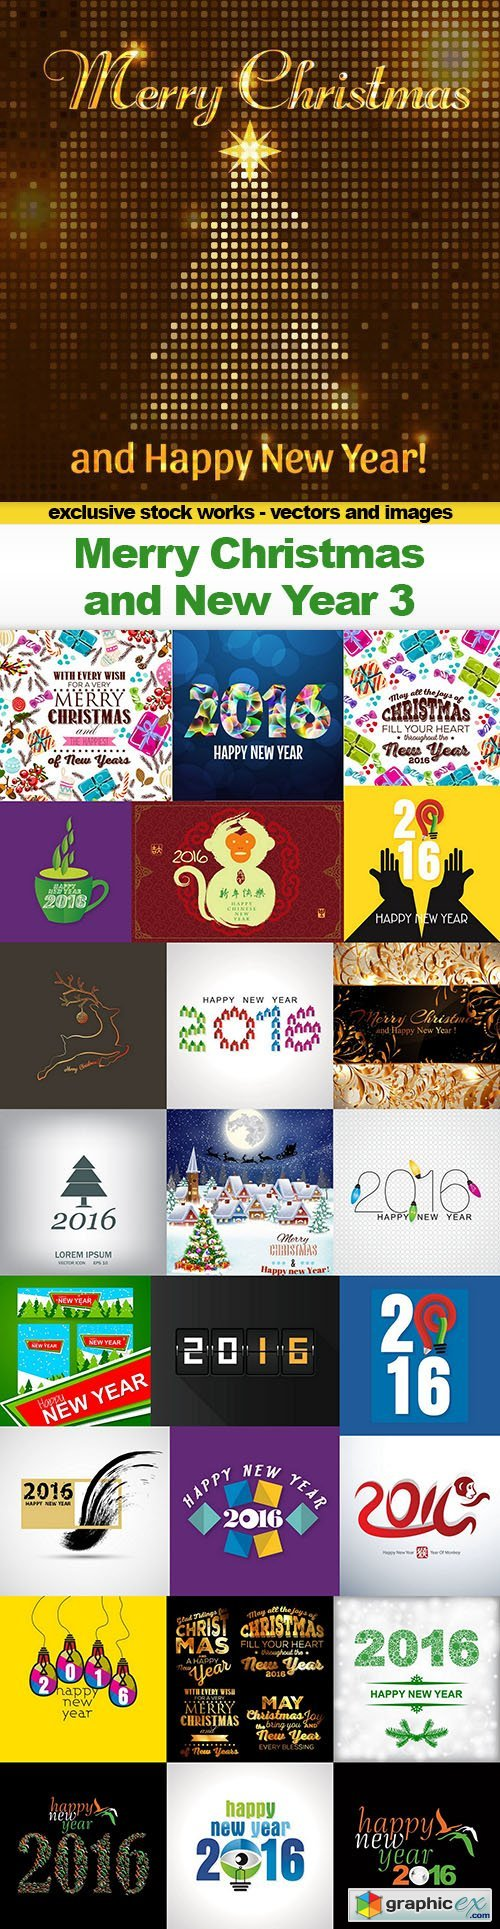 Vector free download vector stock image photoshop icon merry christmas and new year 3 25x eps gumiabroncs Choice Image